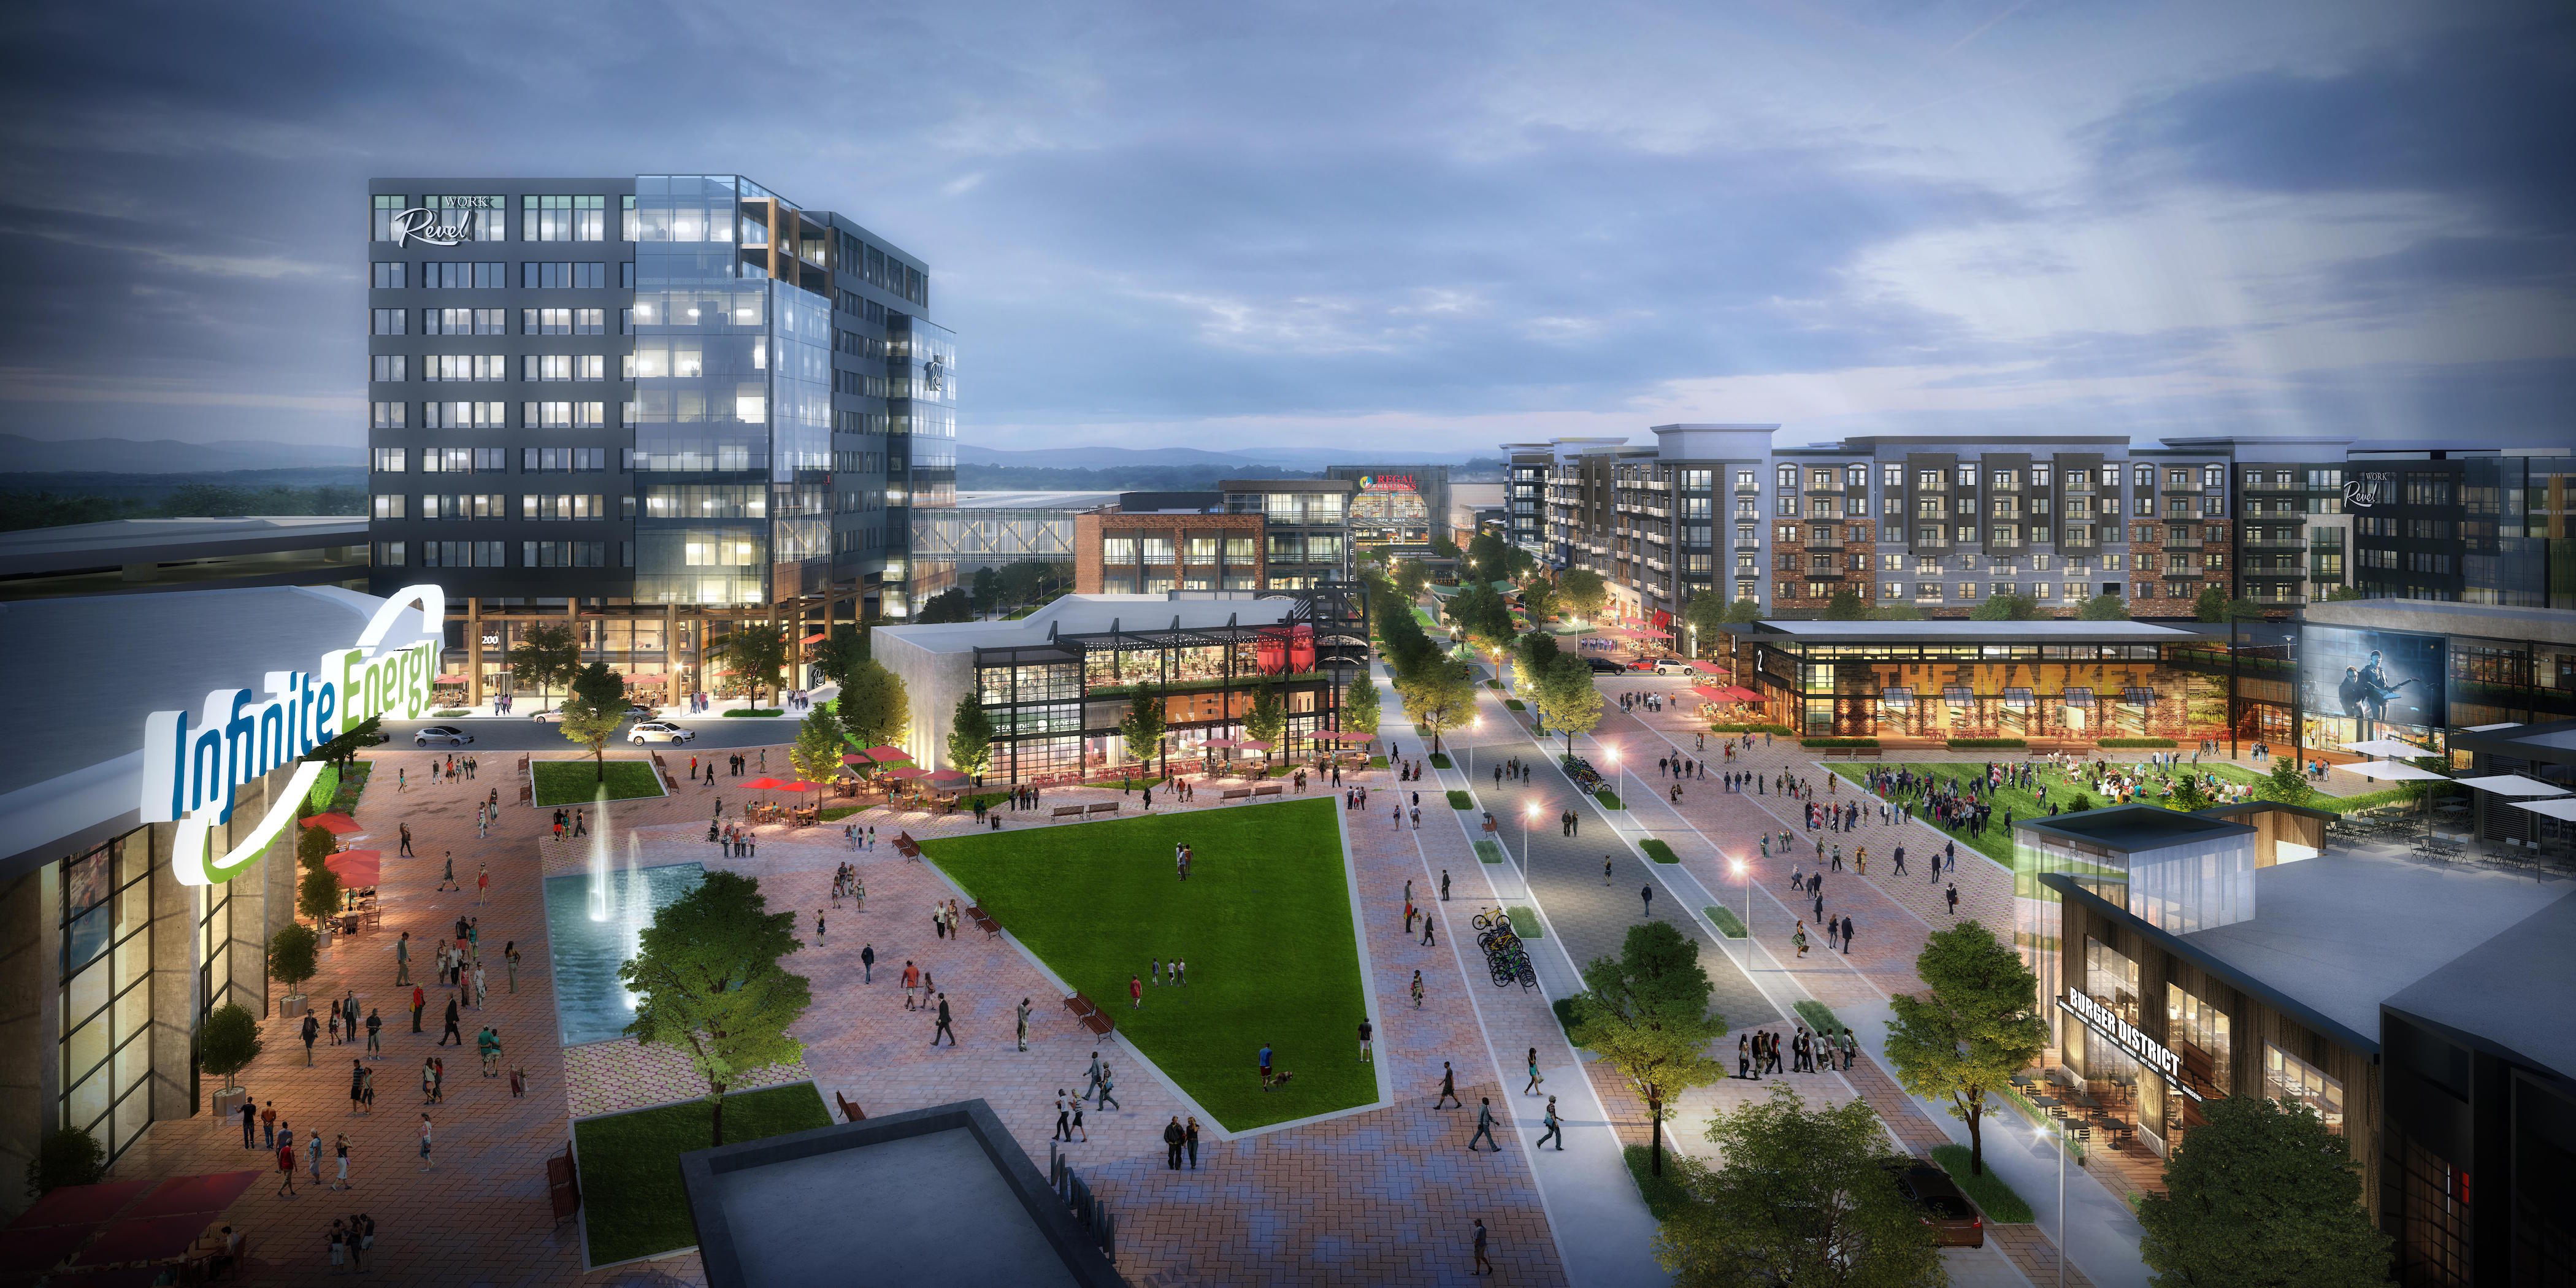 A rendering of the huge mixed-use development planned for Duluth in Gwinnett County.